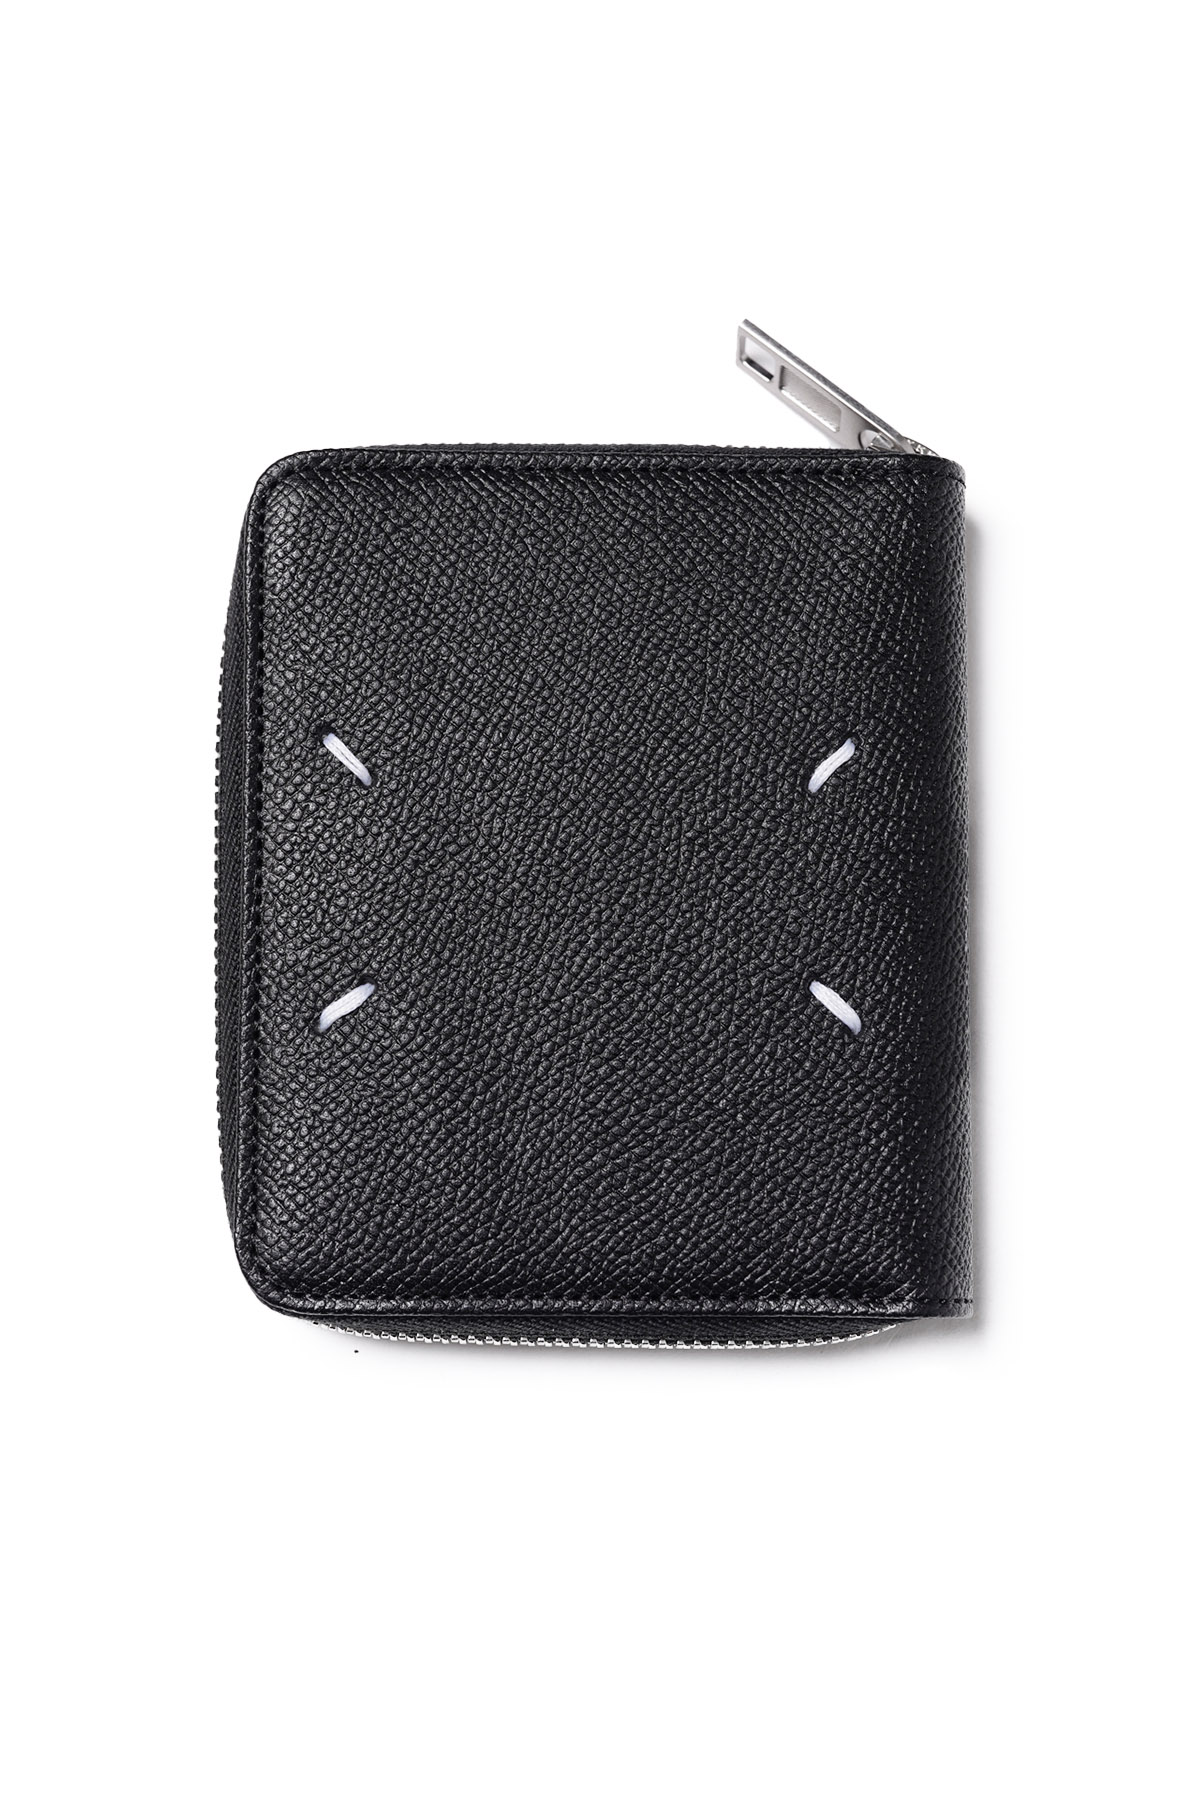 Round Zip Small Wallet[2021SS]